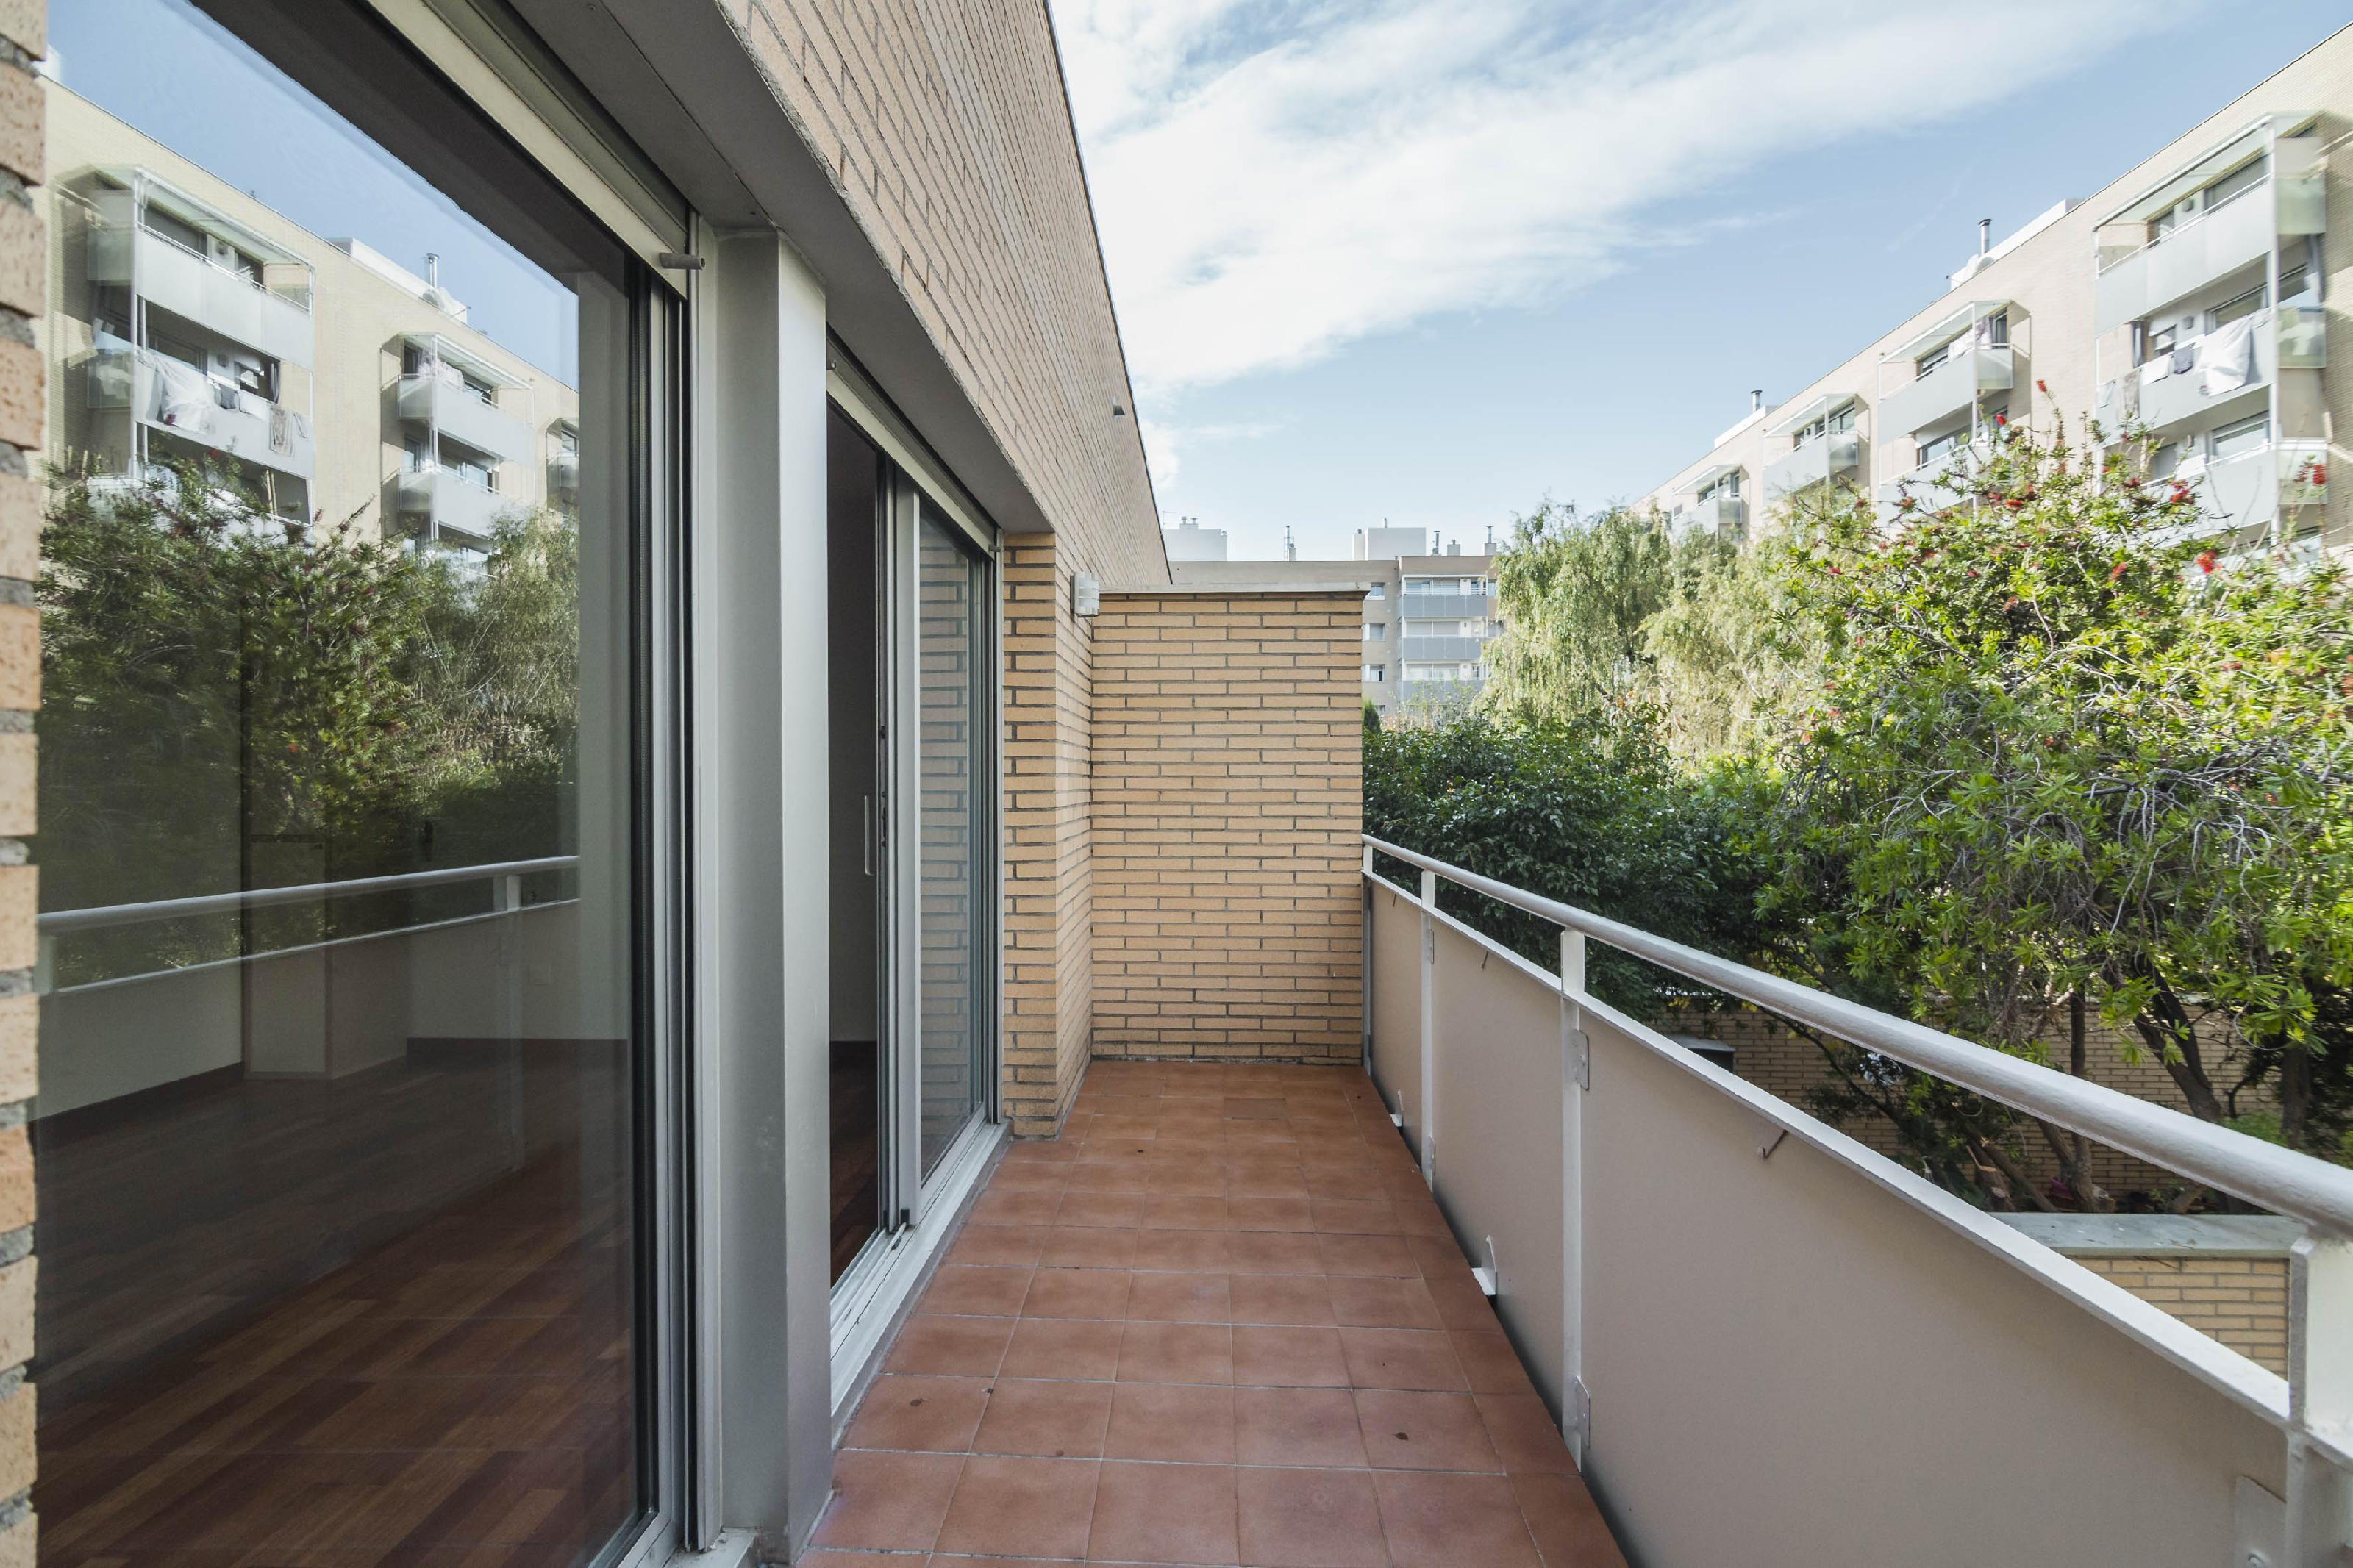 234378 Duplex for sale in Sant Martí, Diagonal Mar and Front Marítim PN 7